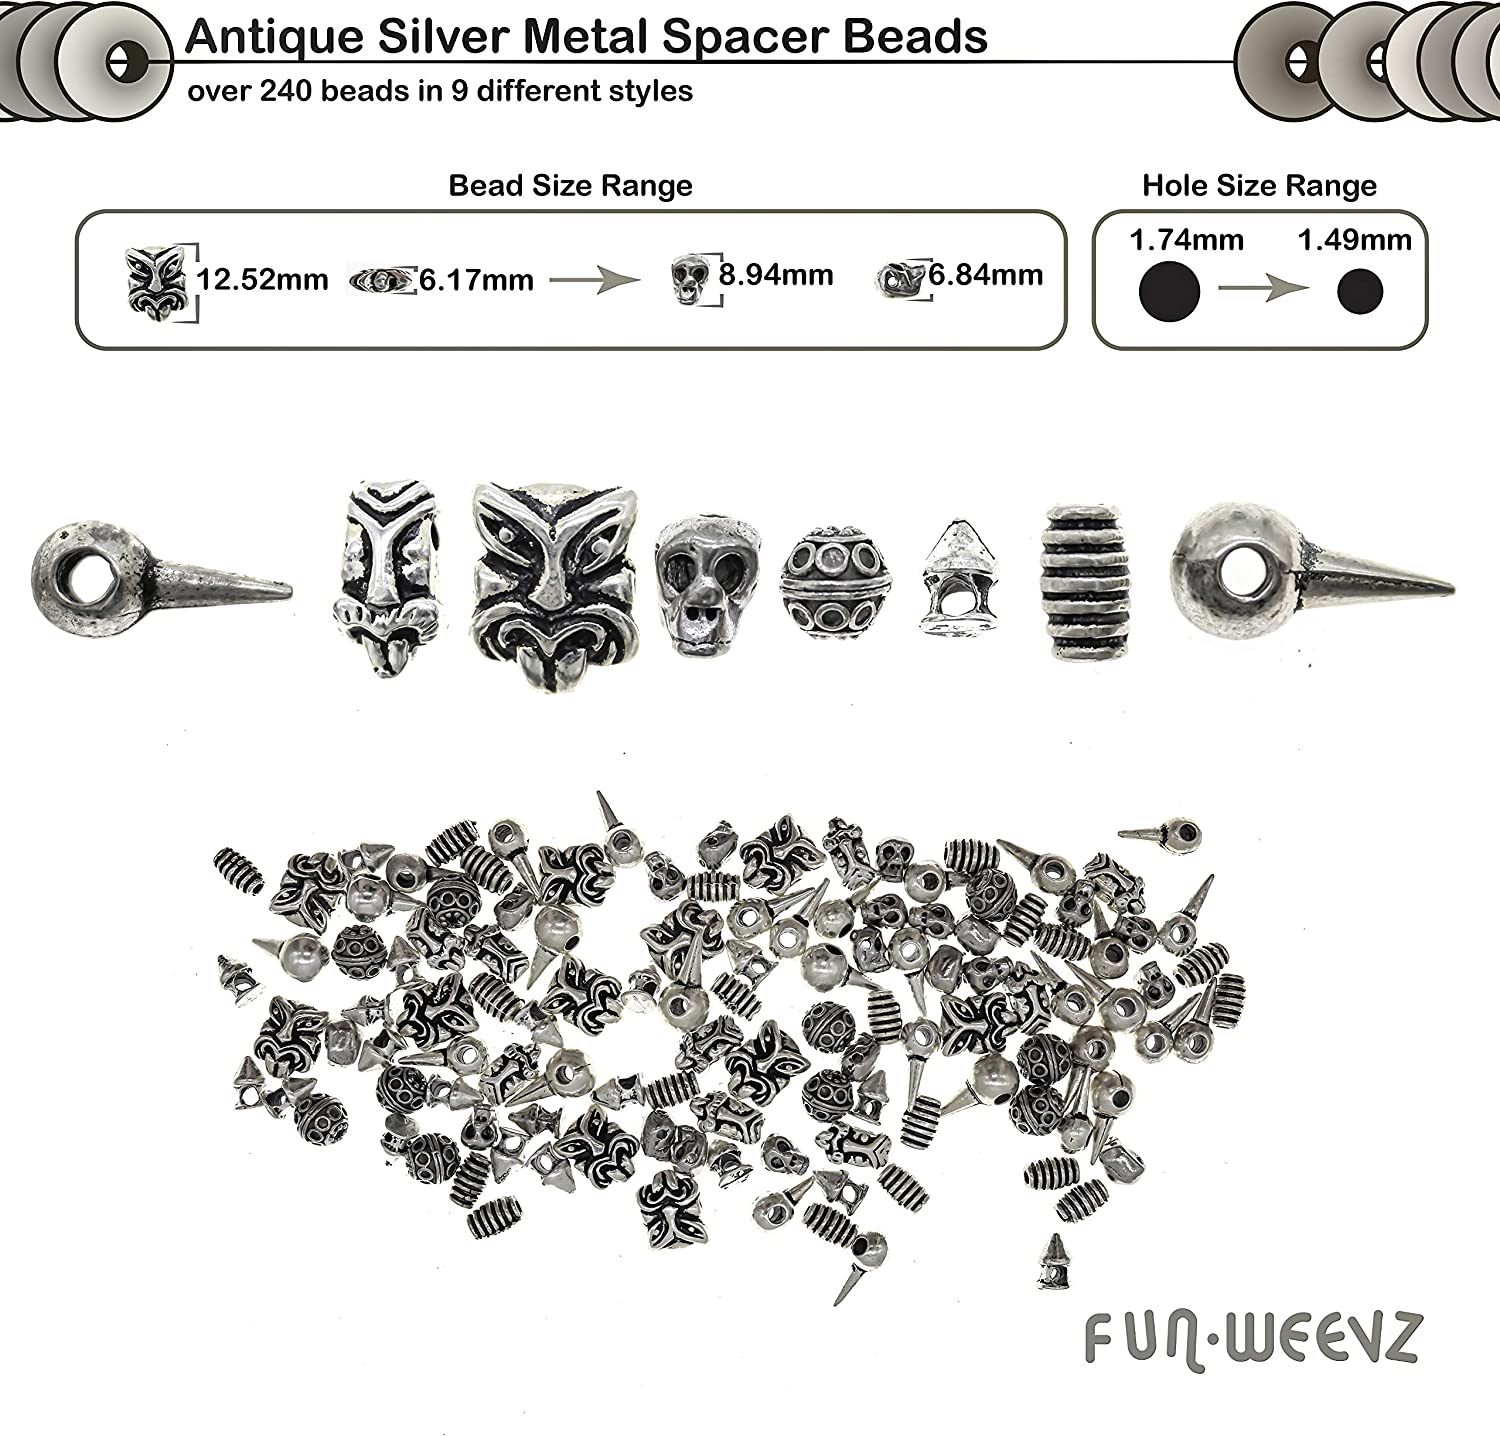 Bracelets Great for DIY Necklaces 8 Style Unique Antique Look Bulk Bead Assortment Over 650 PCs Tibetan and Bali Silver Metal Spacer Beads for Jewelry Making Supplies Kit for Adults